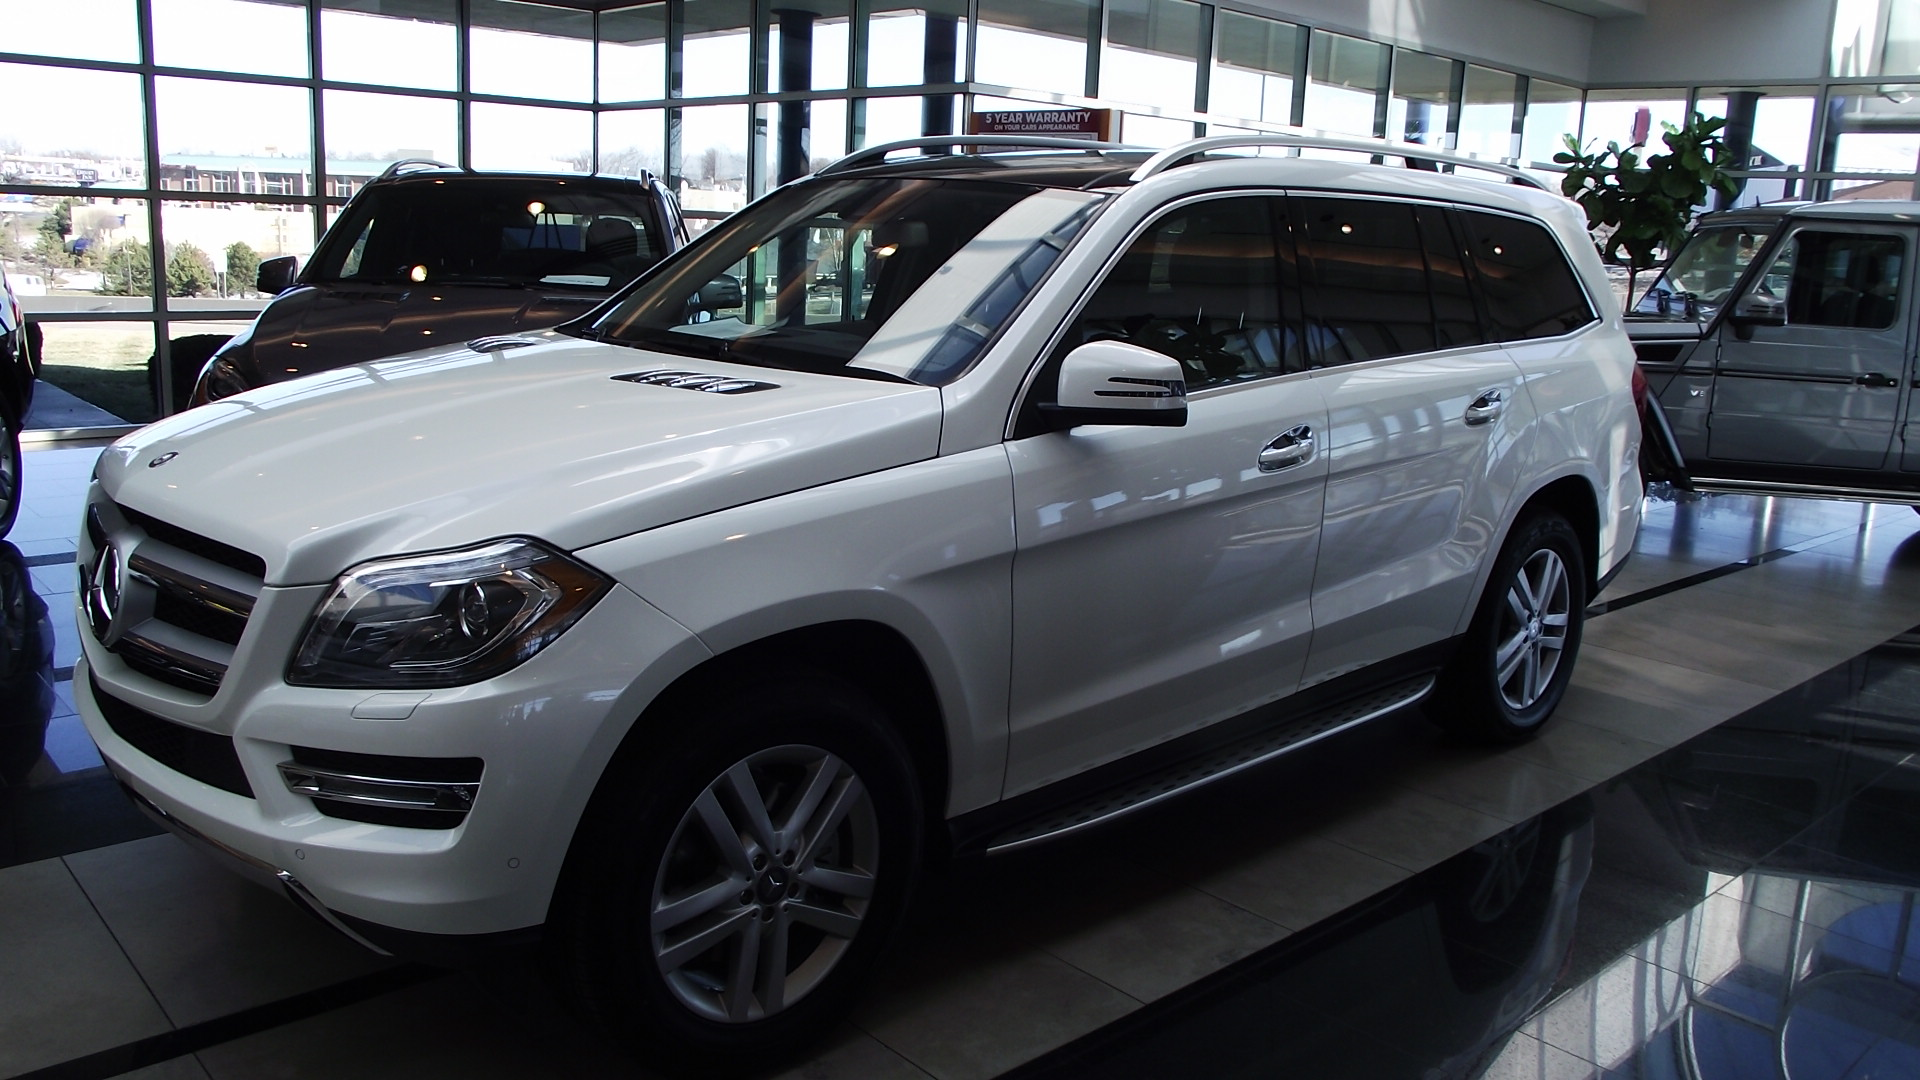 Mercedes benz clase gl 2013 mb adelante bmw atras for Bmw and mercedes benz